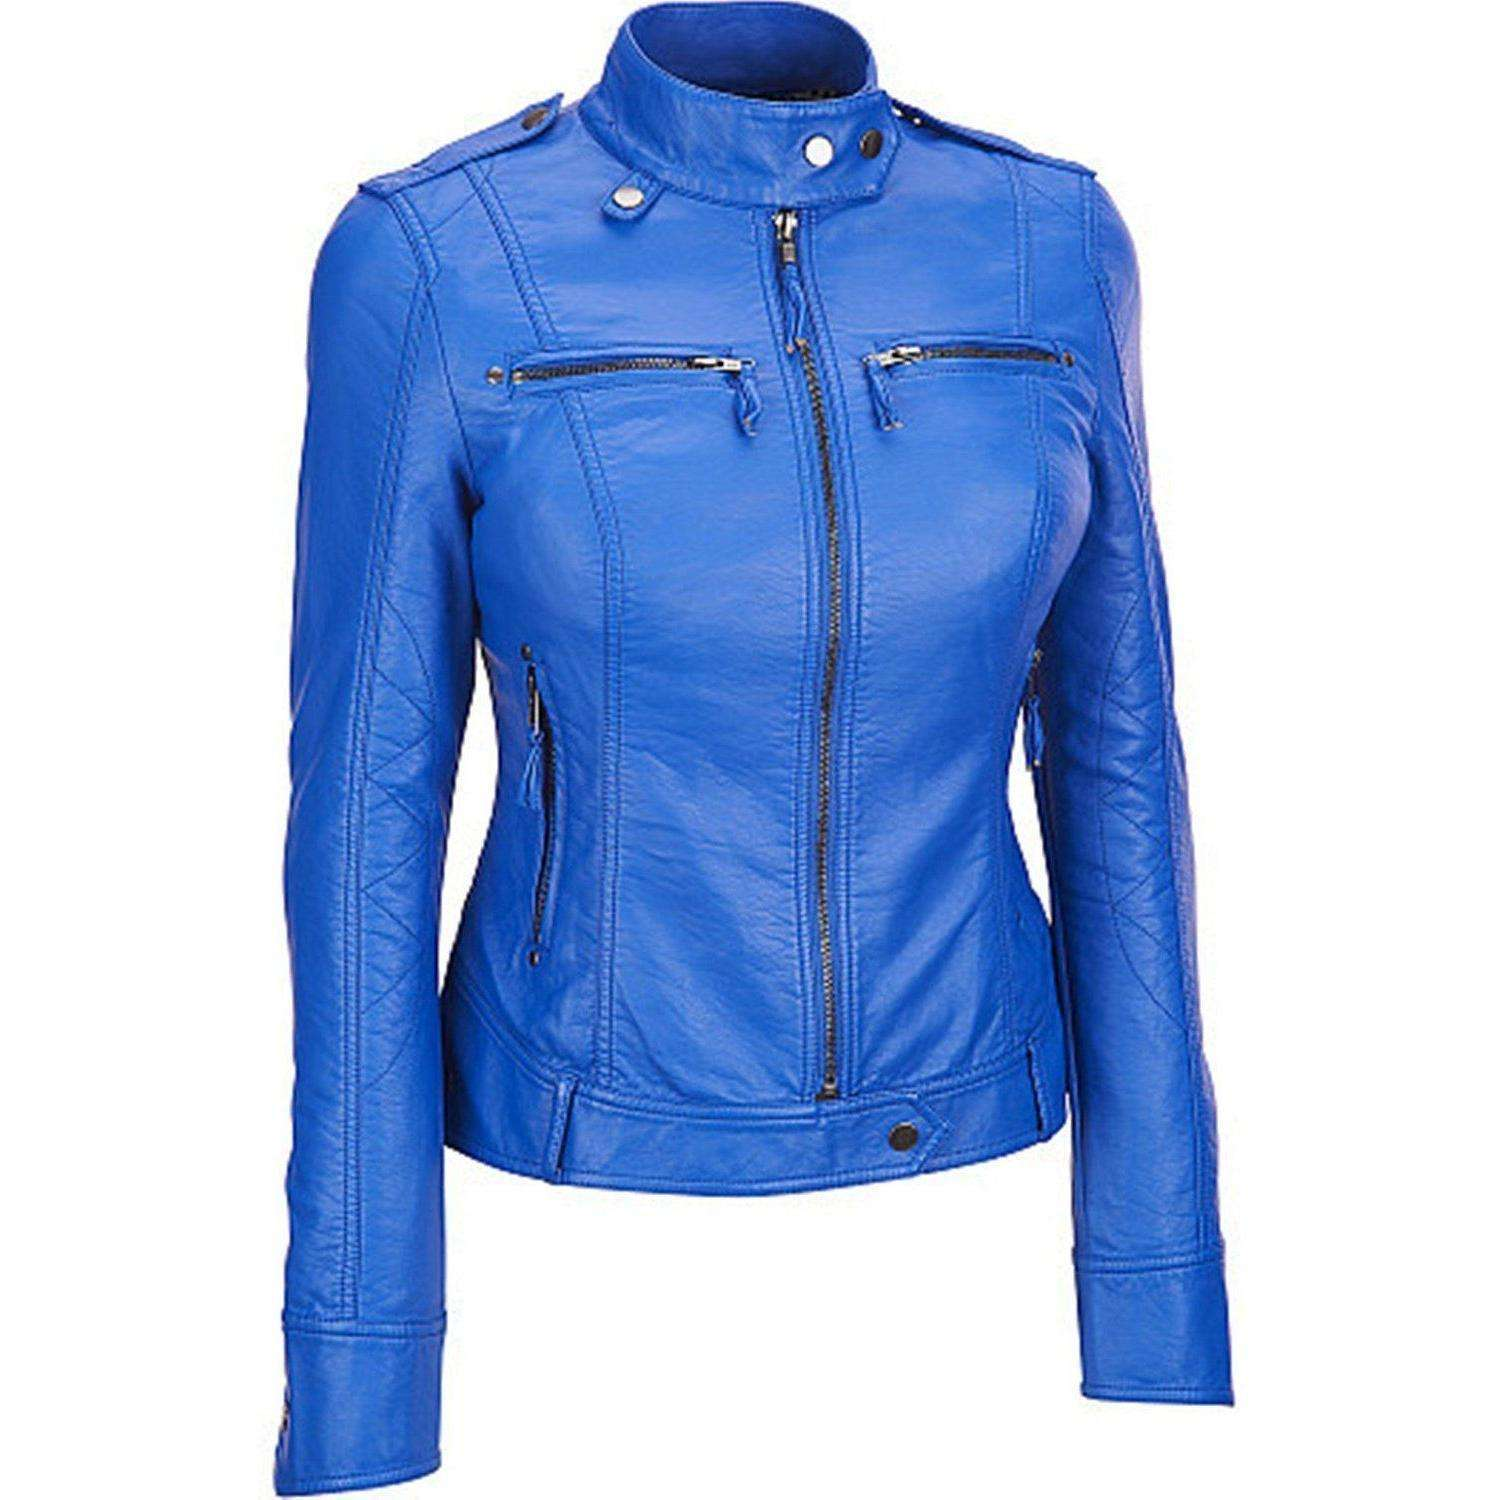 ISHKOMAN - BLUE CAFE RACER JACKET